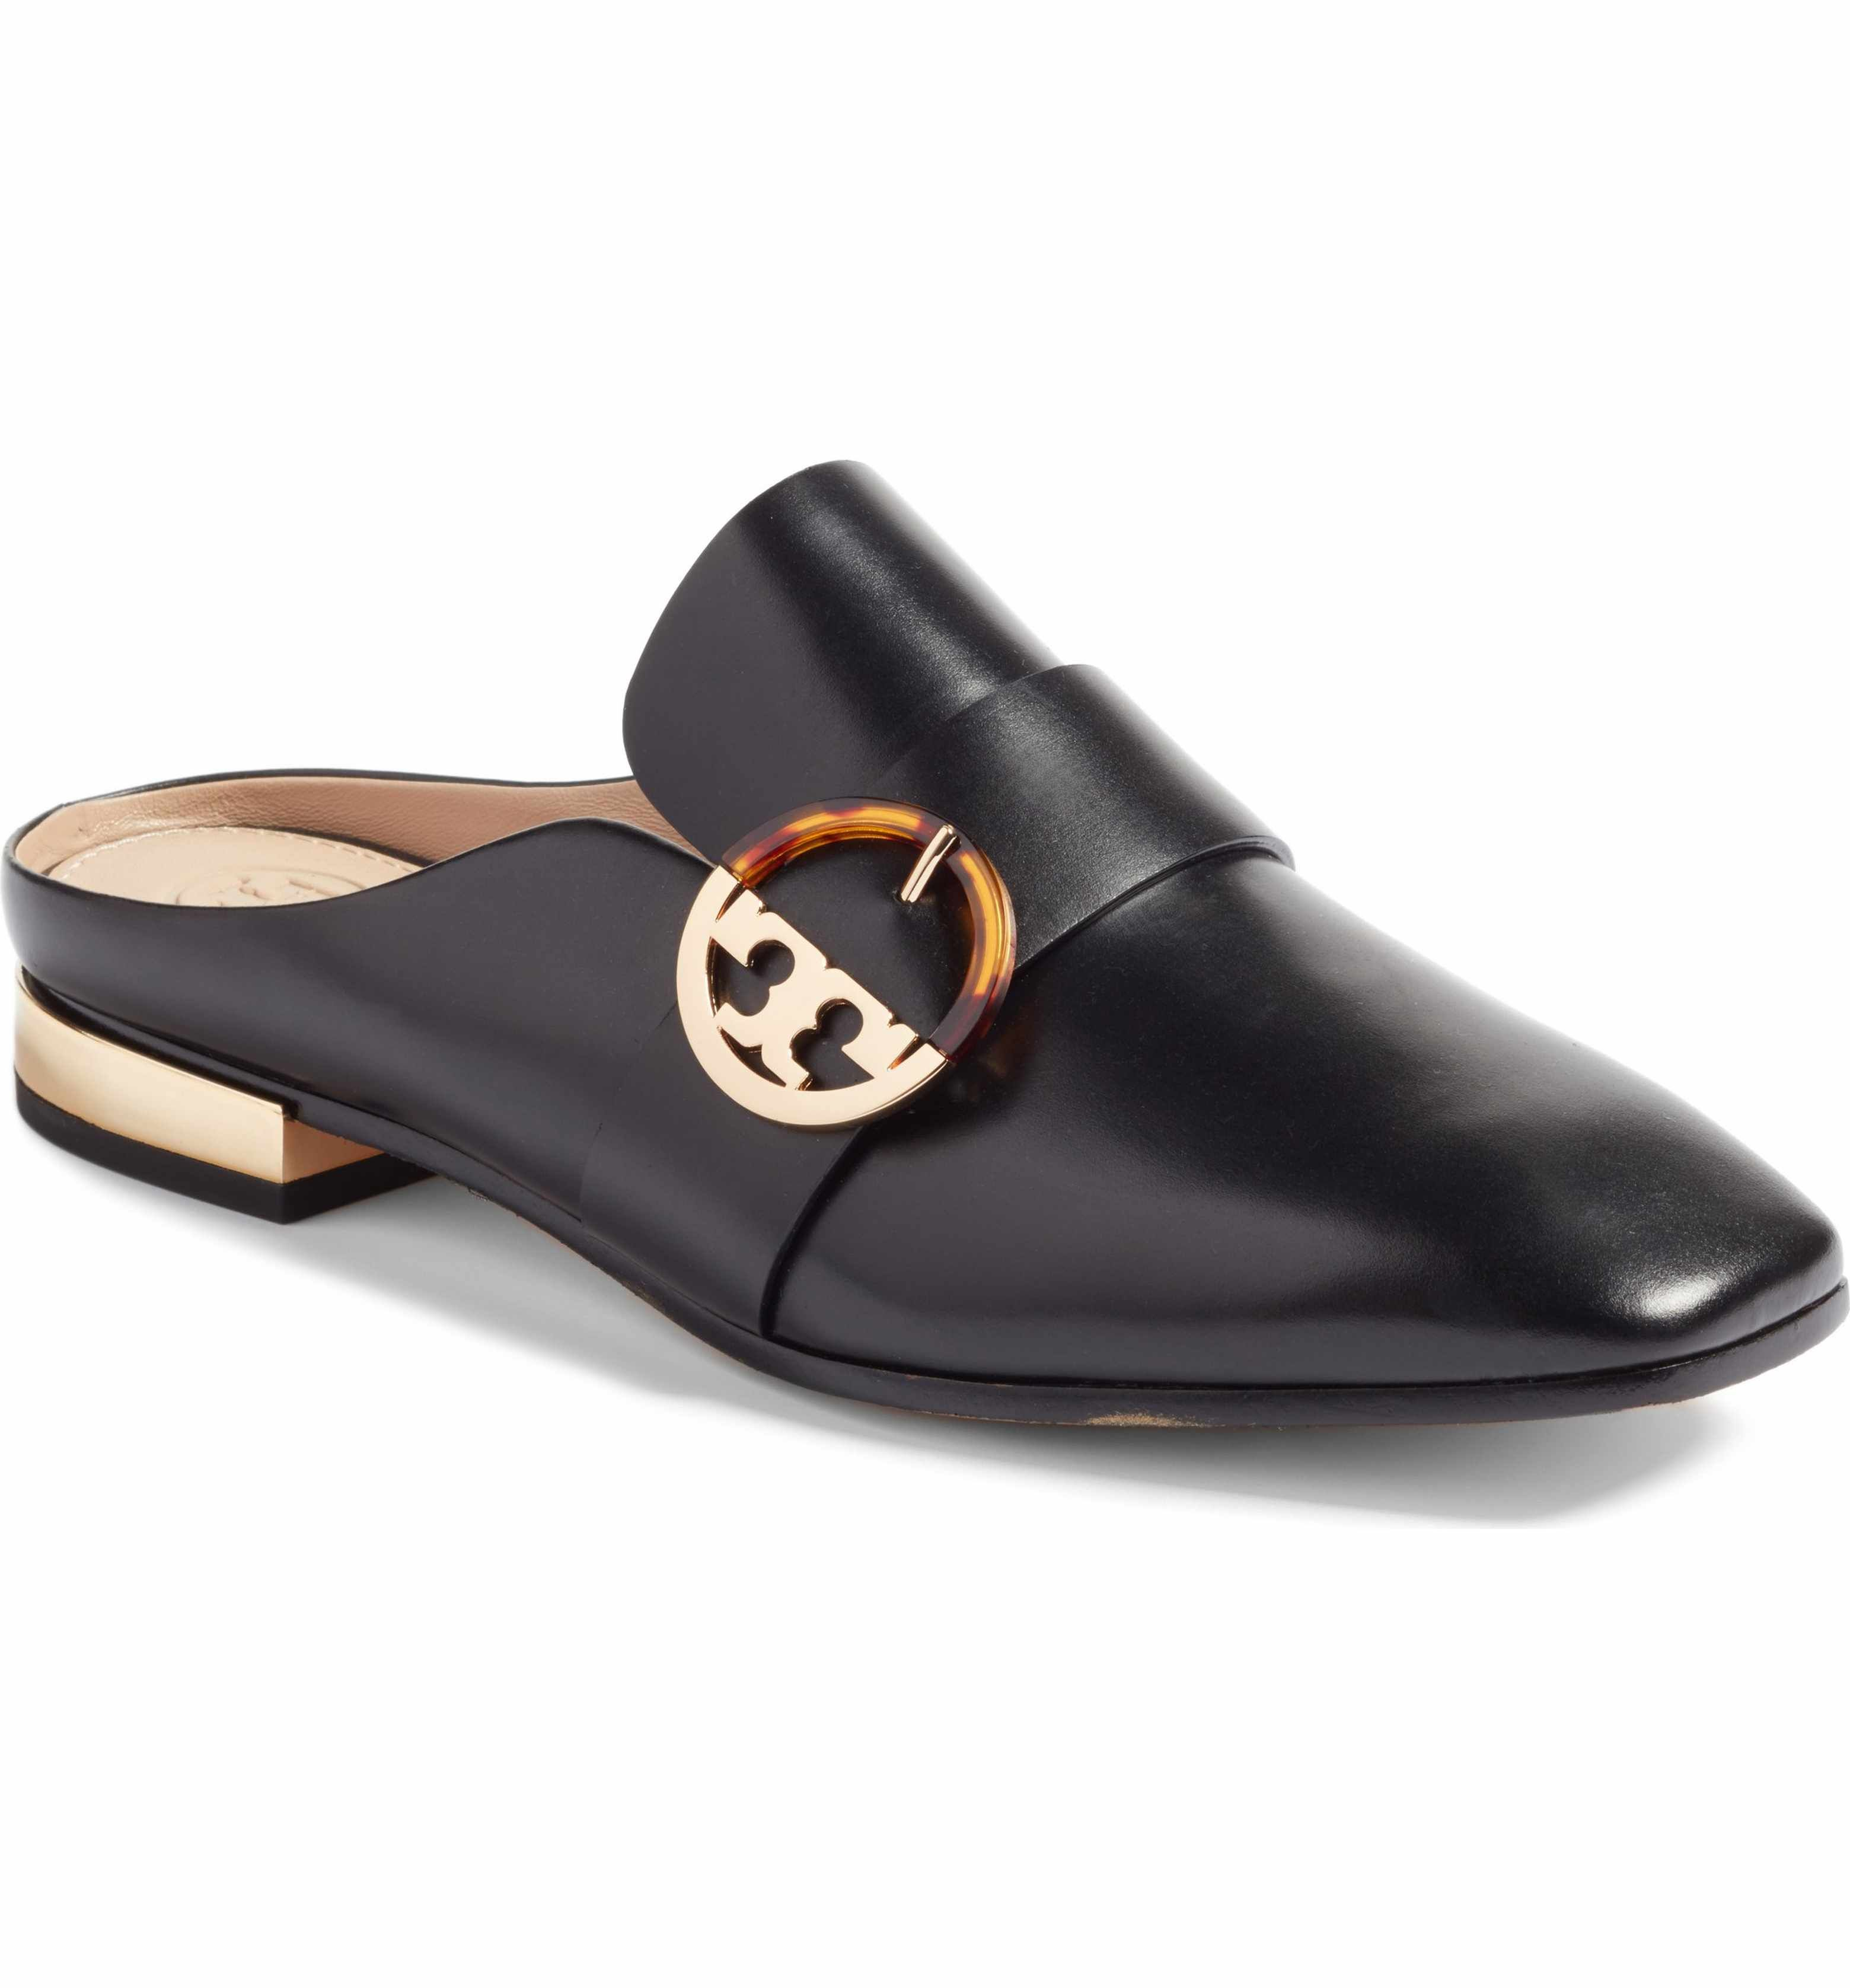 0a3e6f2e489e Main Image - Tory Burch Sidney Backless Loafer (Women)--REQUEST FROM TORY  BURCH SO WE CAN CREDIT TB